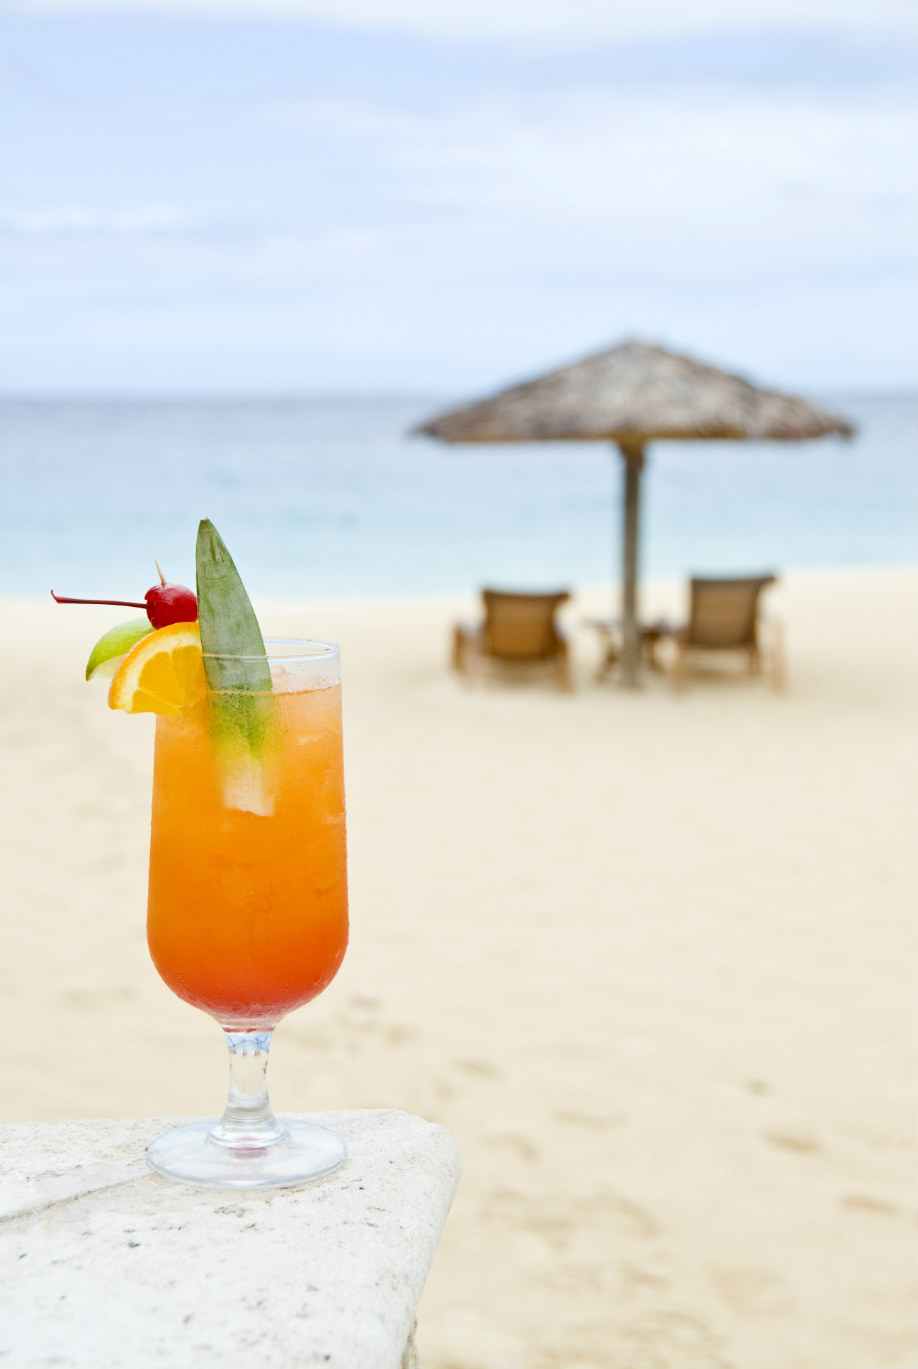 Cocktail-tropicale, Cocktail, Natale, Ricette, Ingredienti, Dalani, Brasile